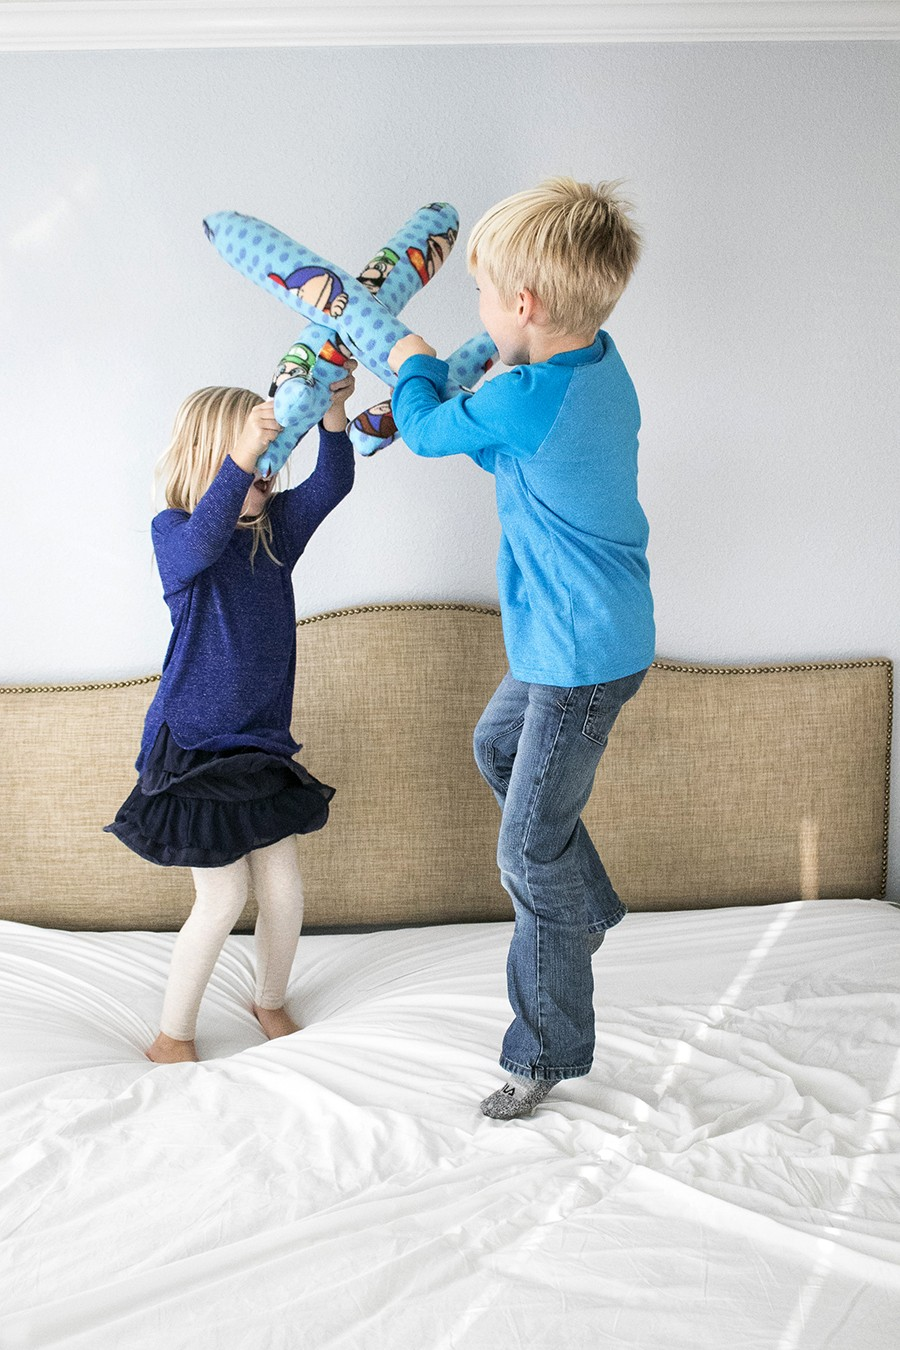 pillow swords sewing tutorial, awesome handmade kids gift idea!